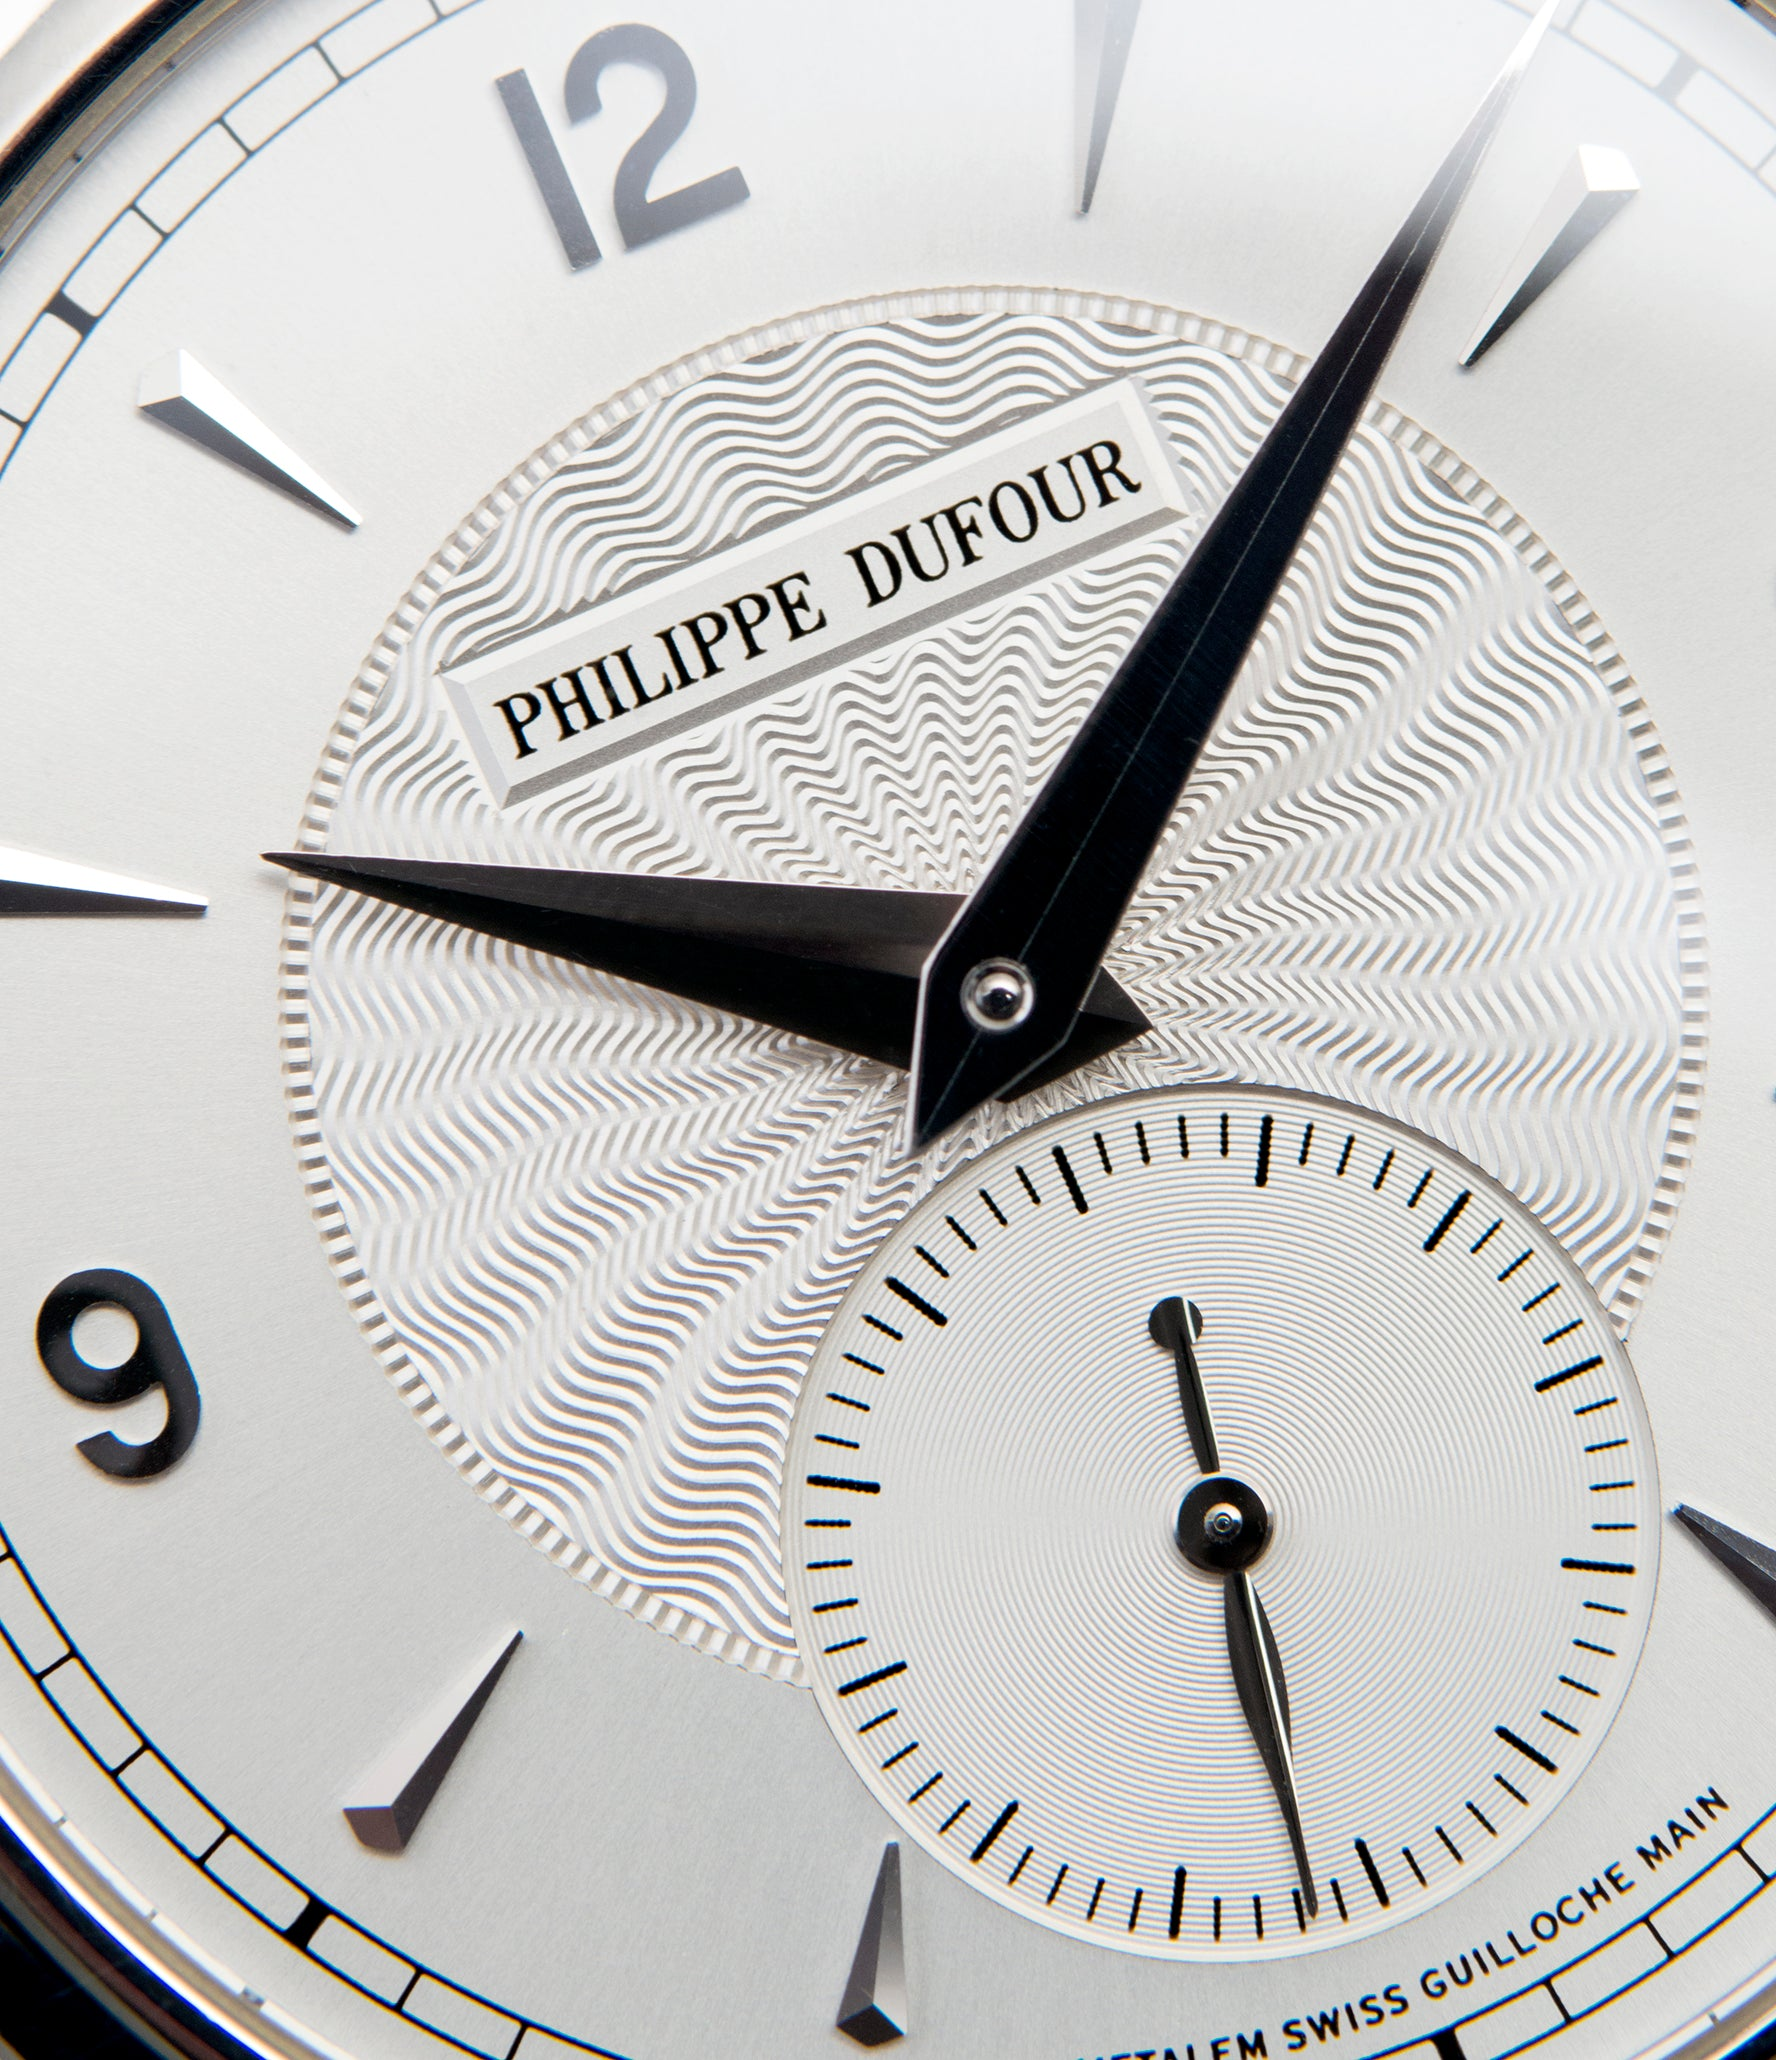 silver guilloche dial Philippe Dufour Simplicity platinum time-only dress watch for sale online at A Collected Man London UK approved specialist of preowned independent watchmakers